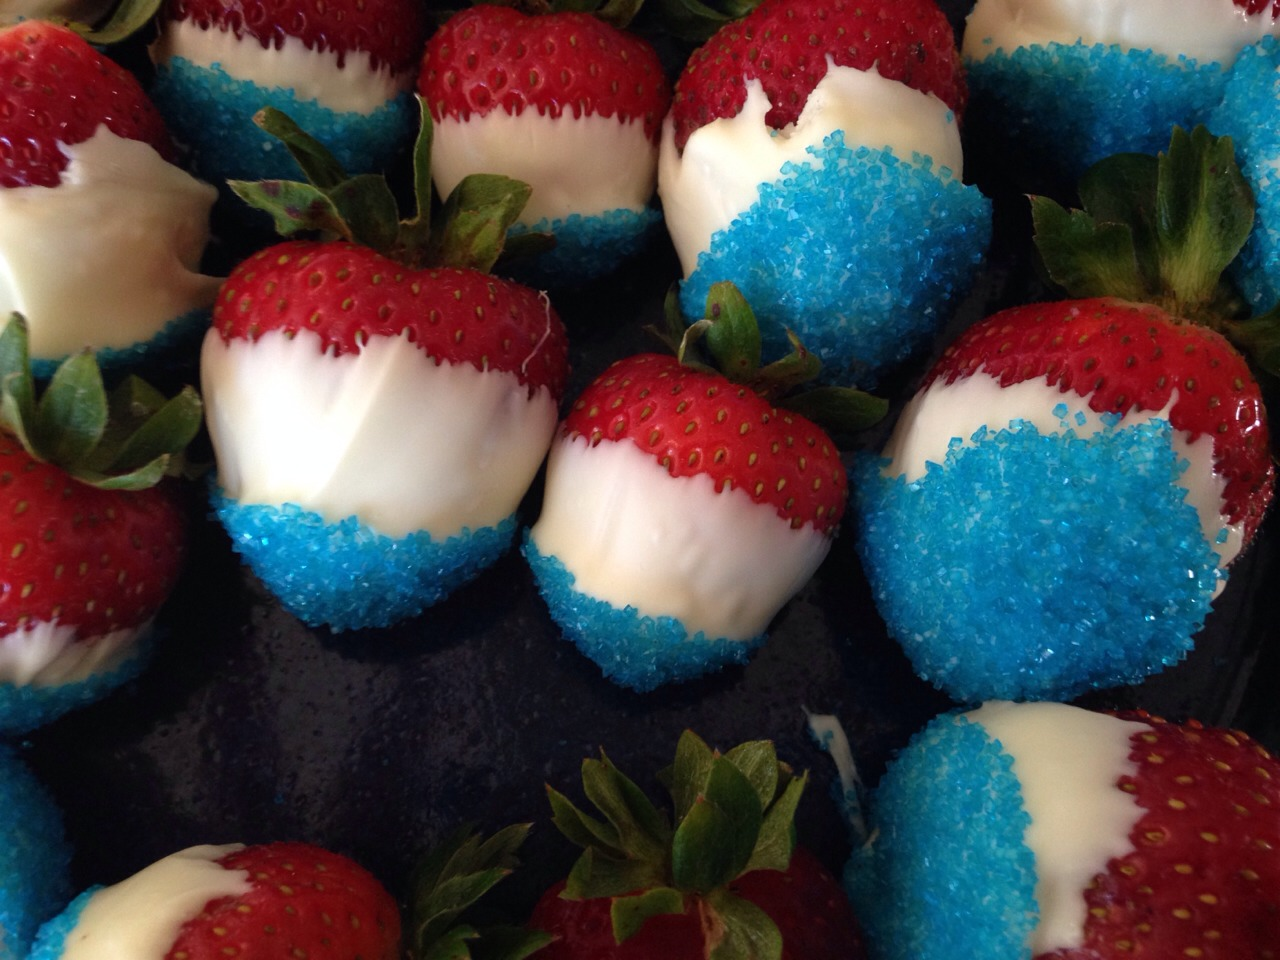 dip strawberries in white chocolate and then add blue sprinkles on the end. you could do this for other holidays by changing the colors